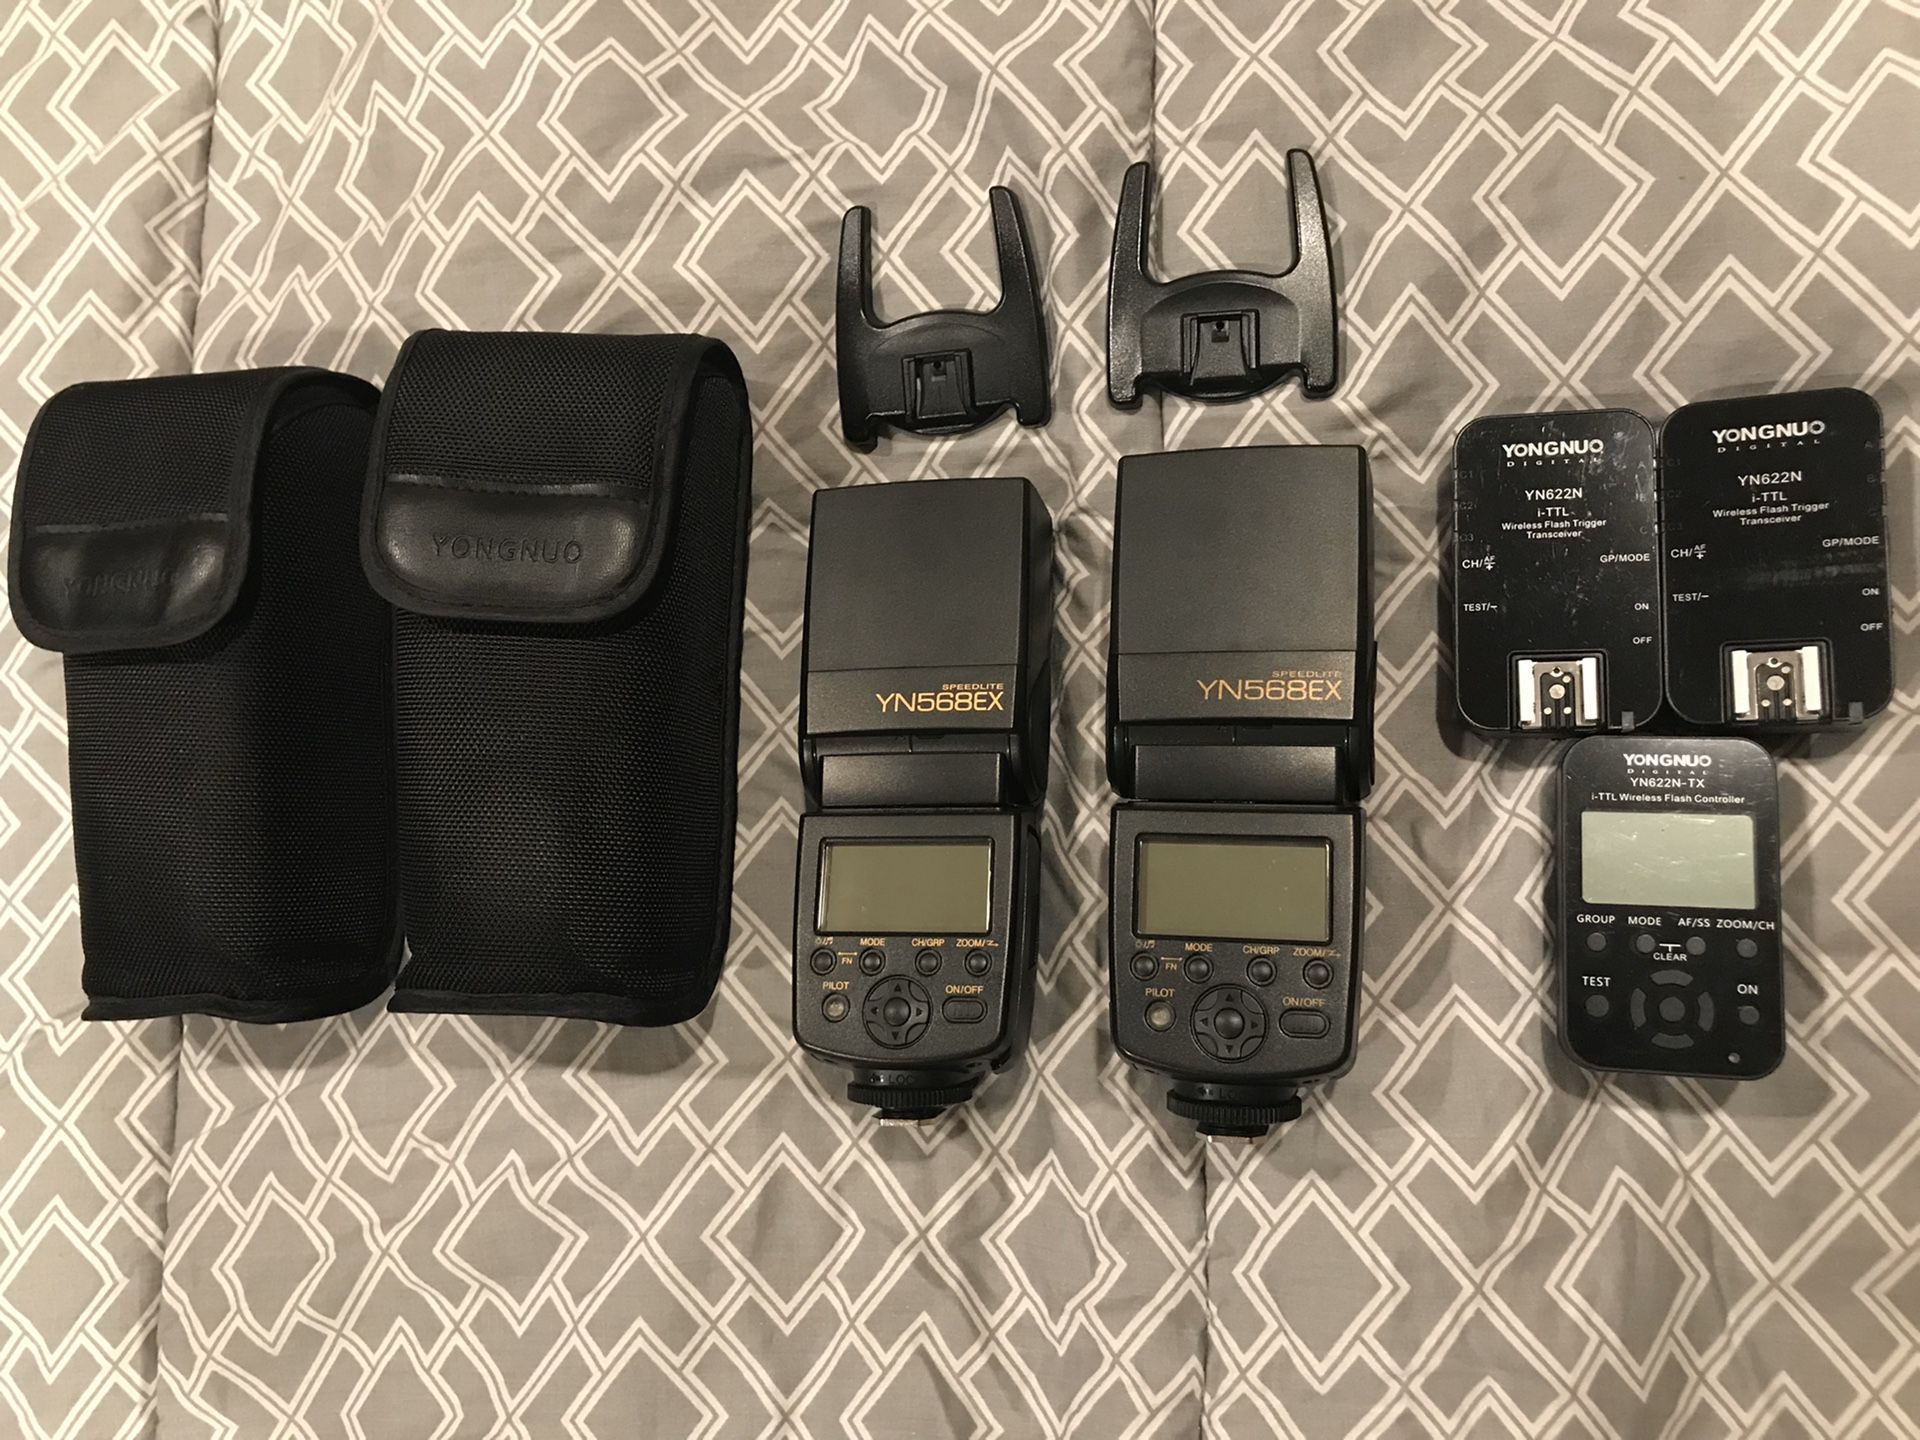 Yongnuo flashes (2), triggers (2), and controller